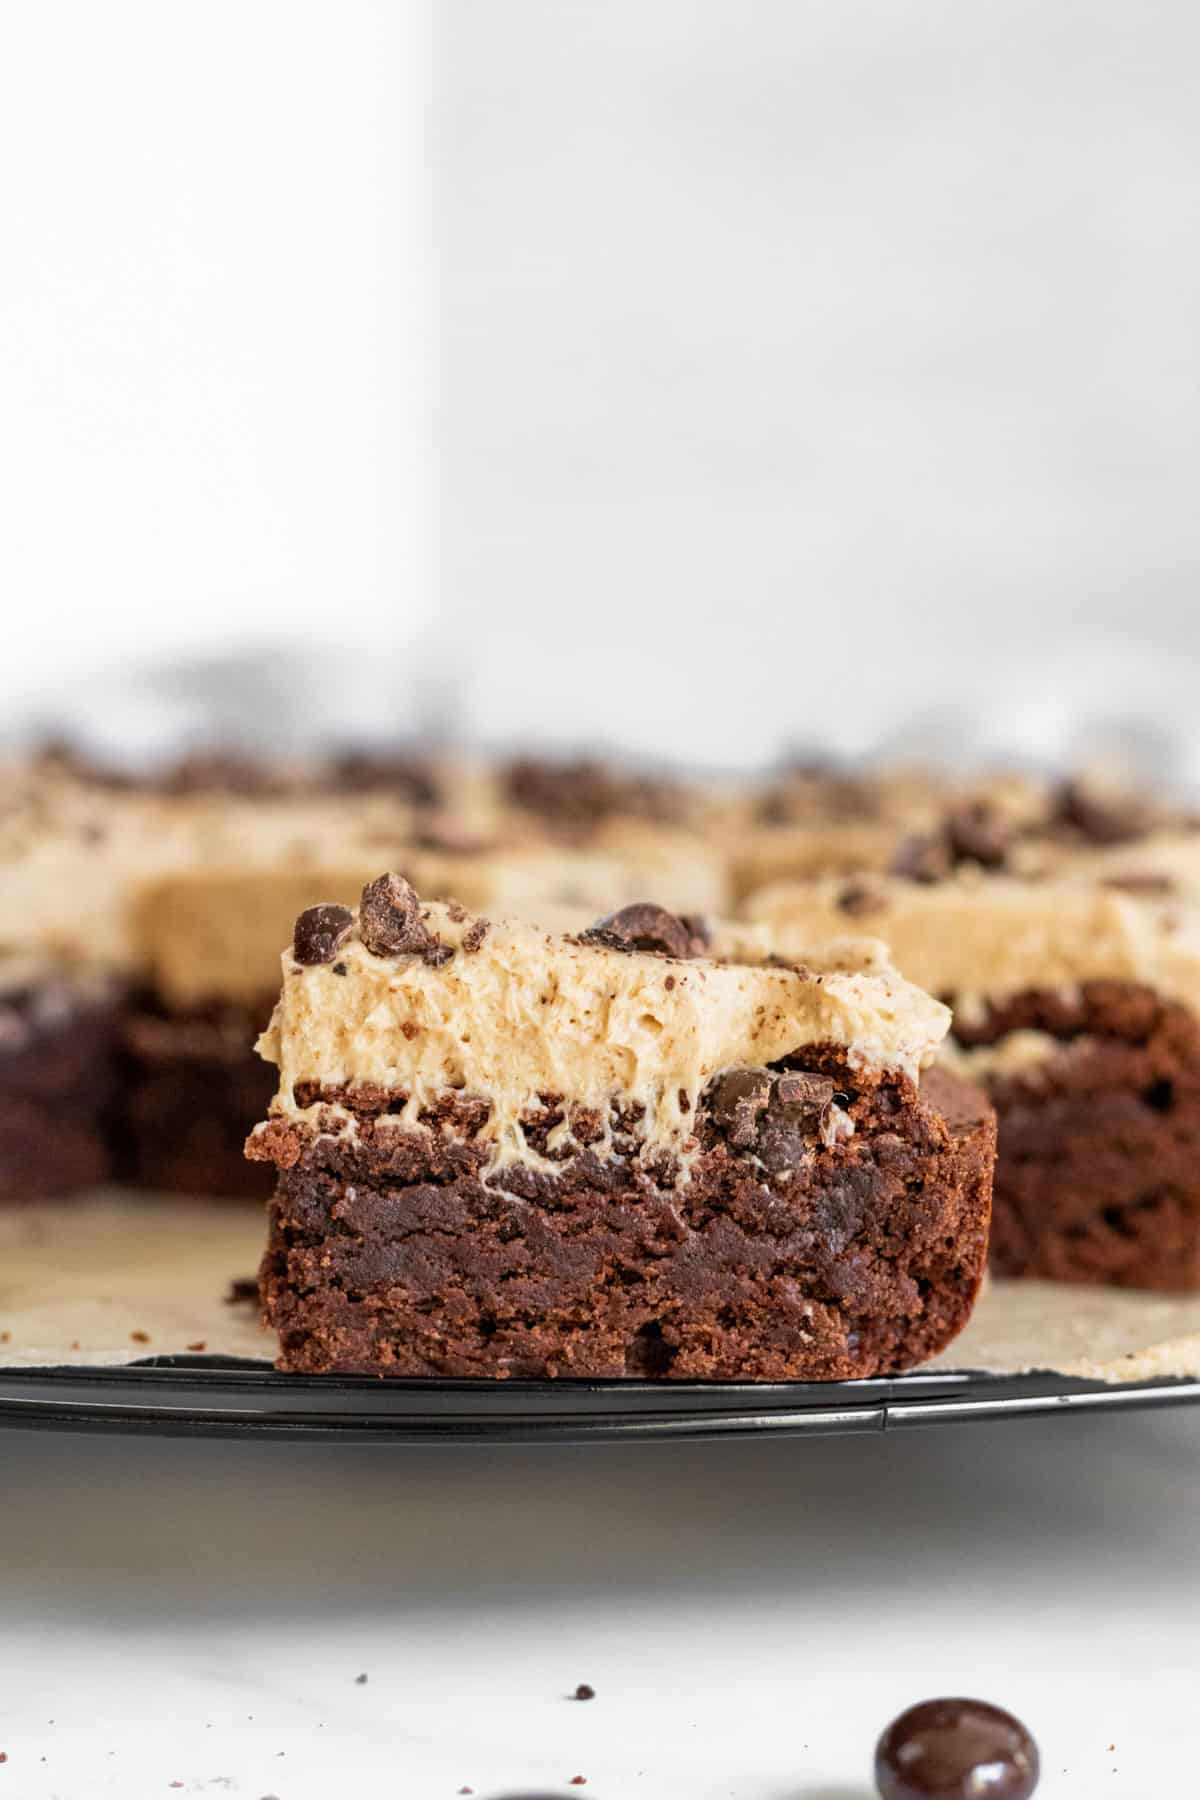 close up of a slice of brownie with espresso frosting on a cooling rack with other brownies in the background